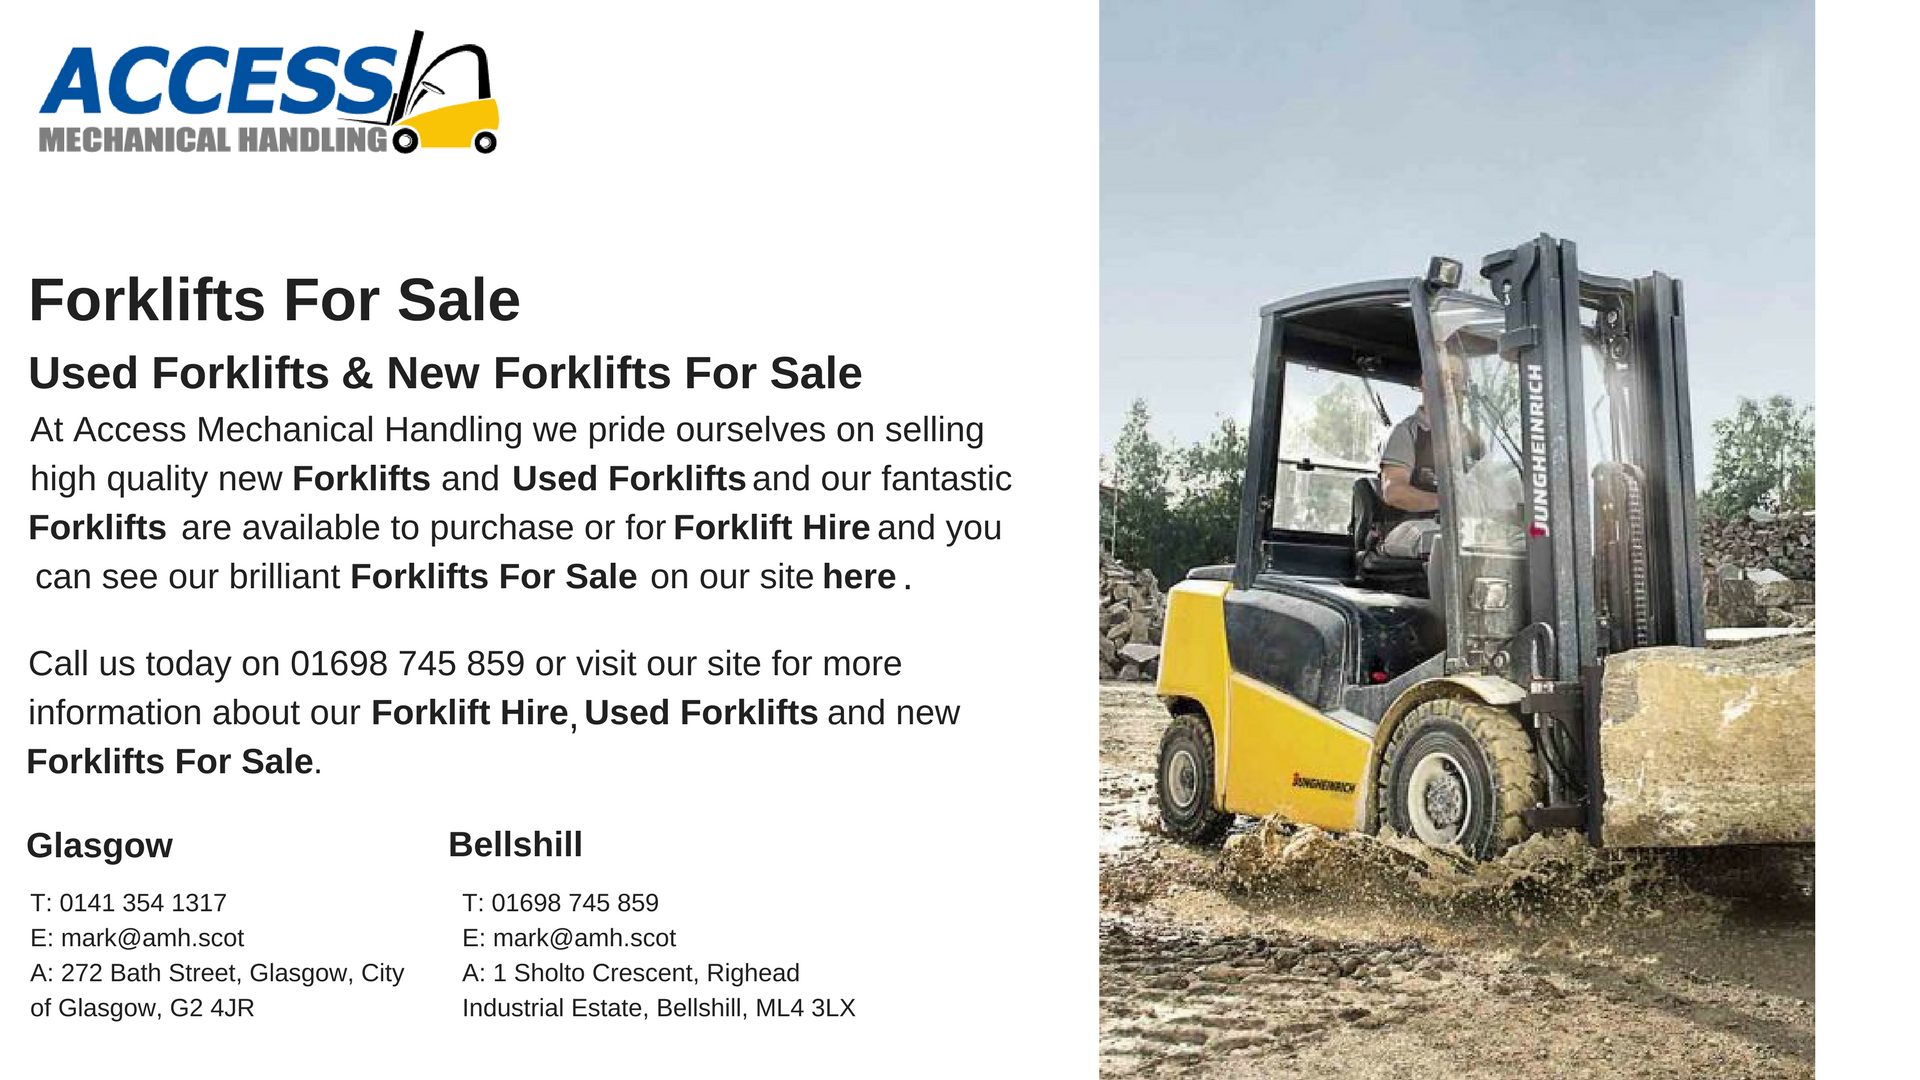 9 awesome Forklift Hire images | Attendance, Awareness